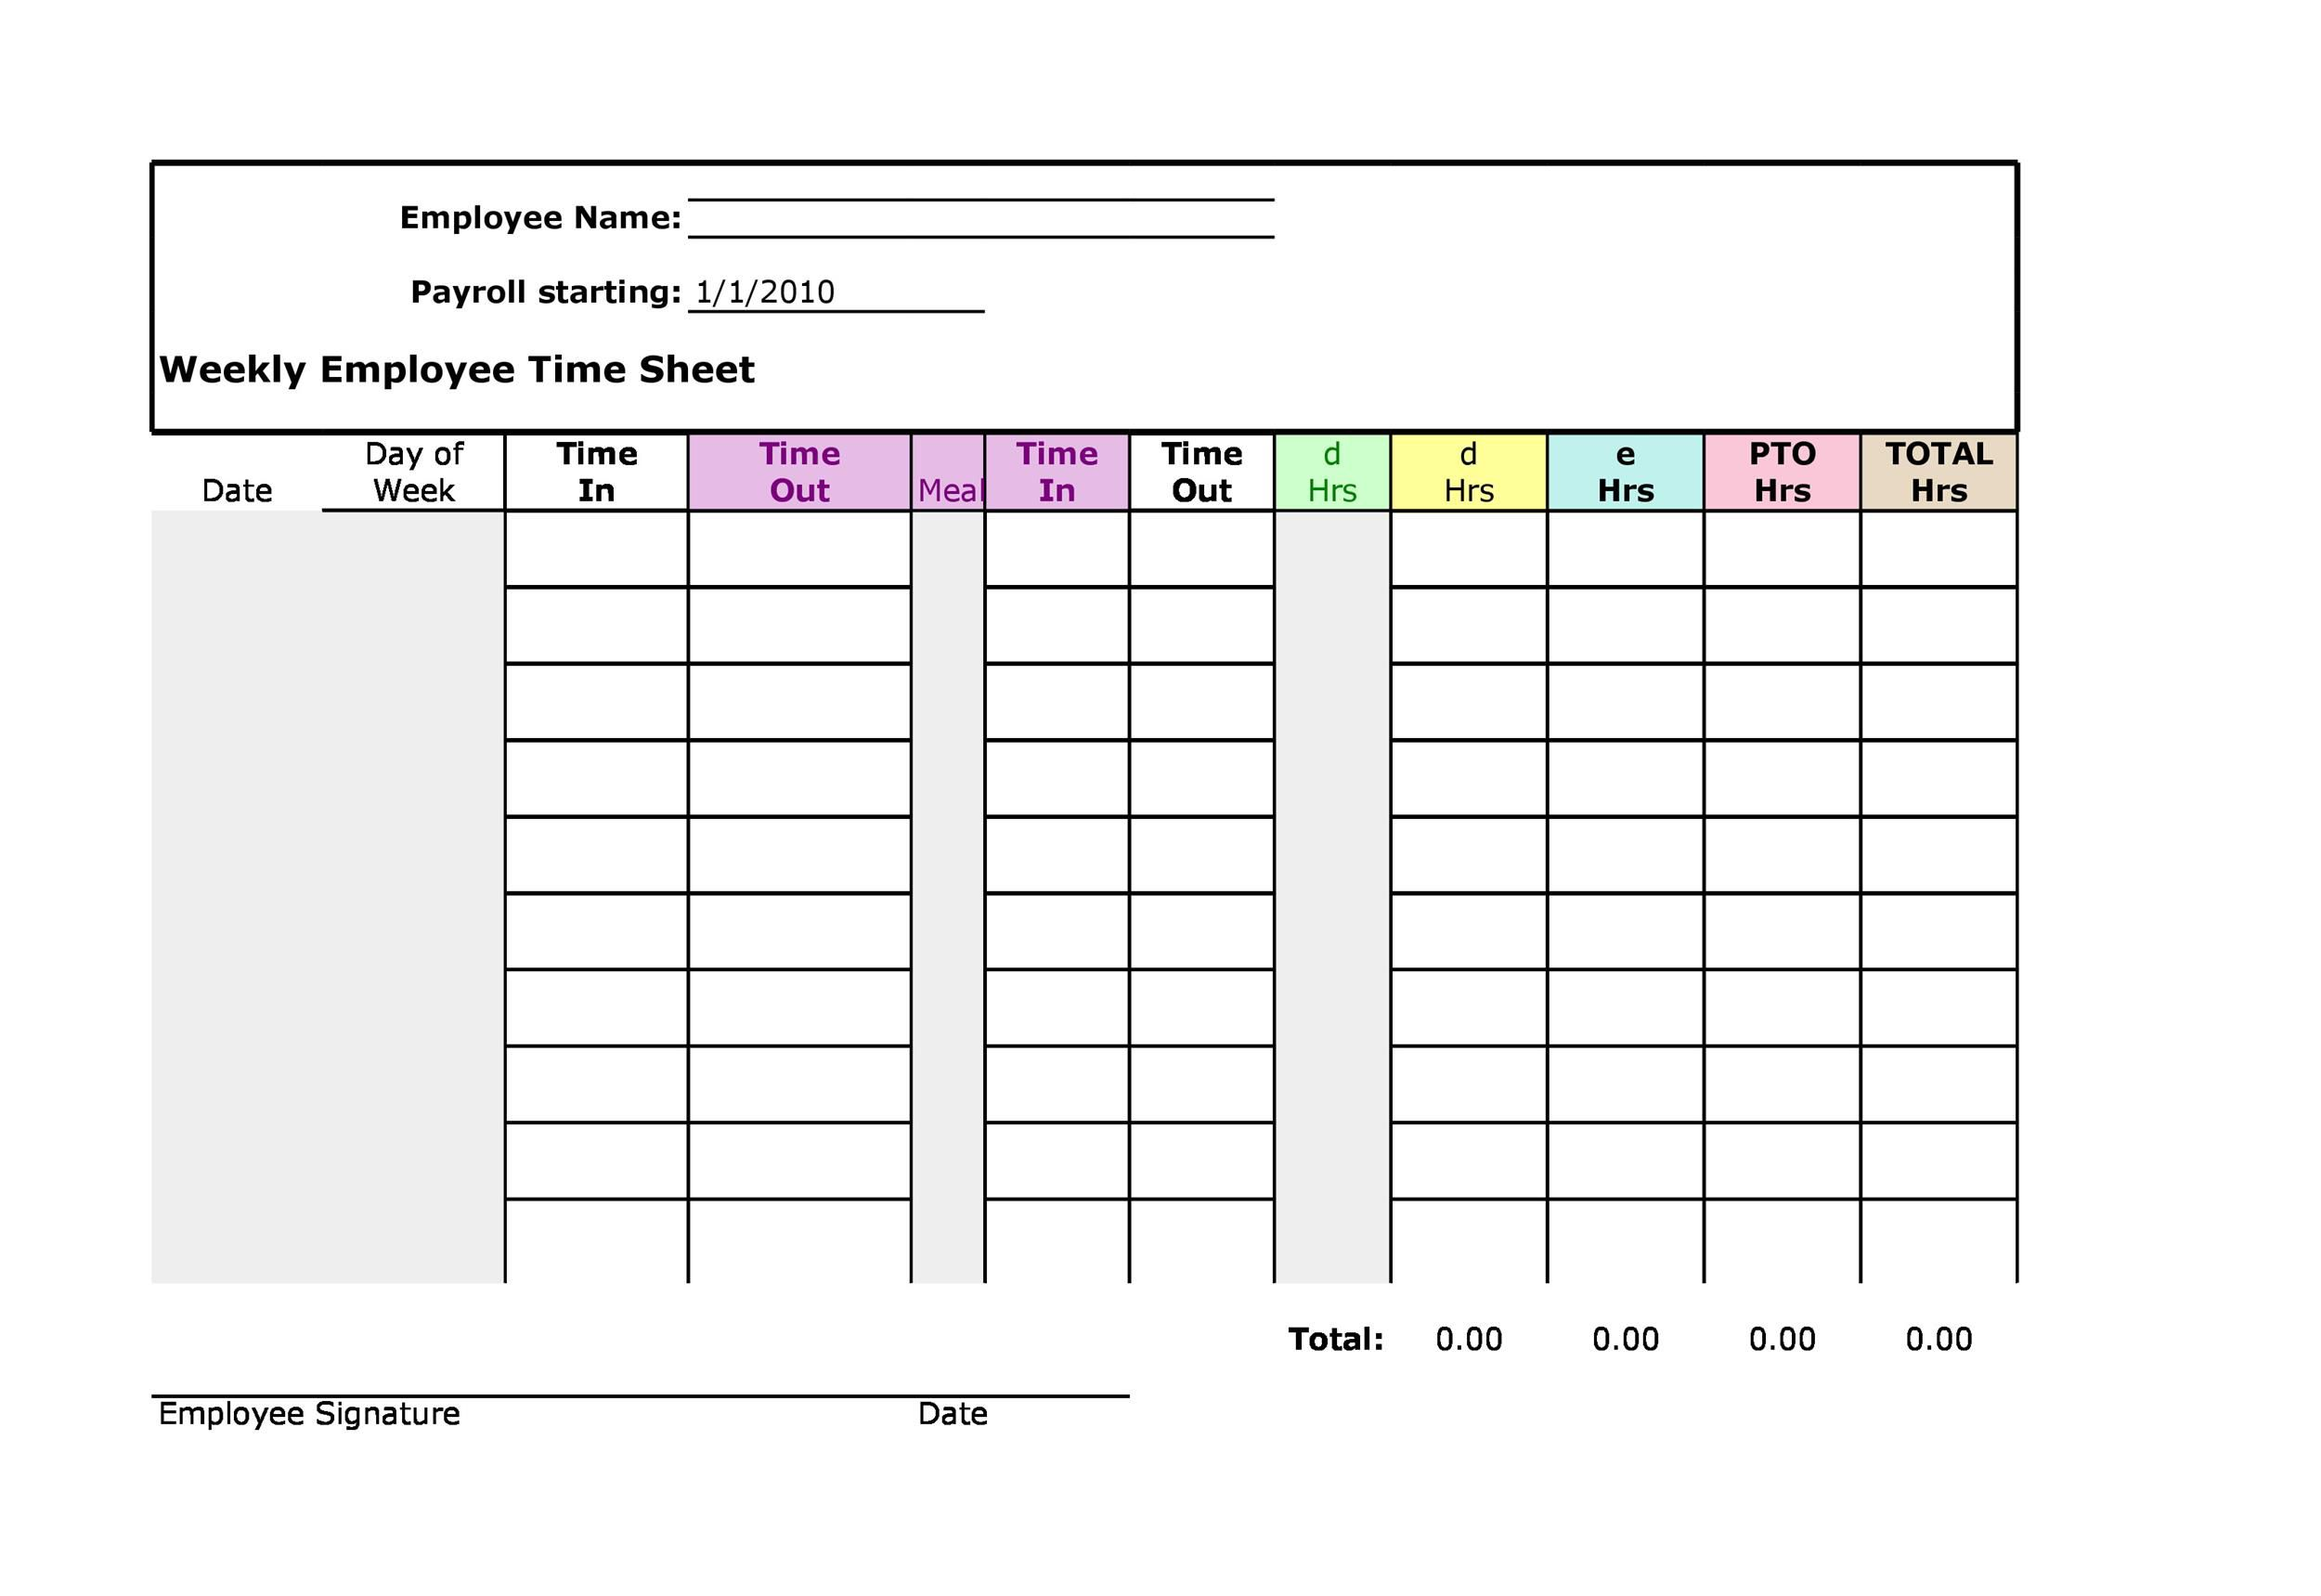 008 Singular Employee Monthly Time Card Template High Def Full